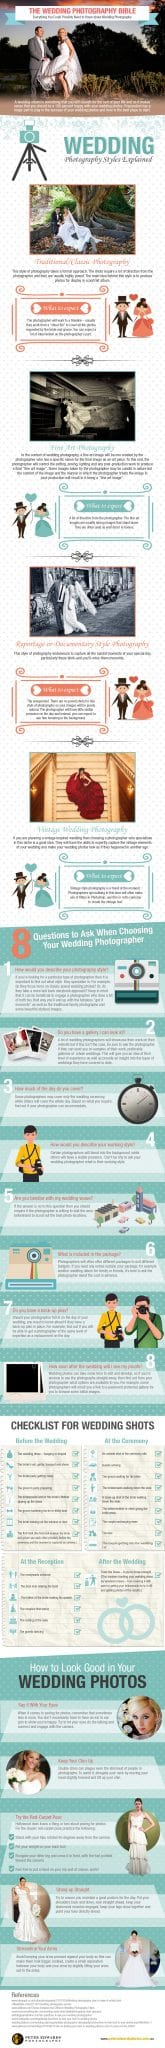 The Destination Wedding Photography Bible